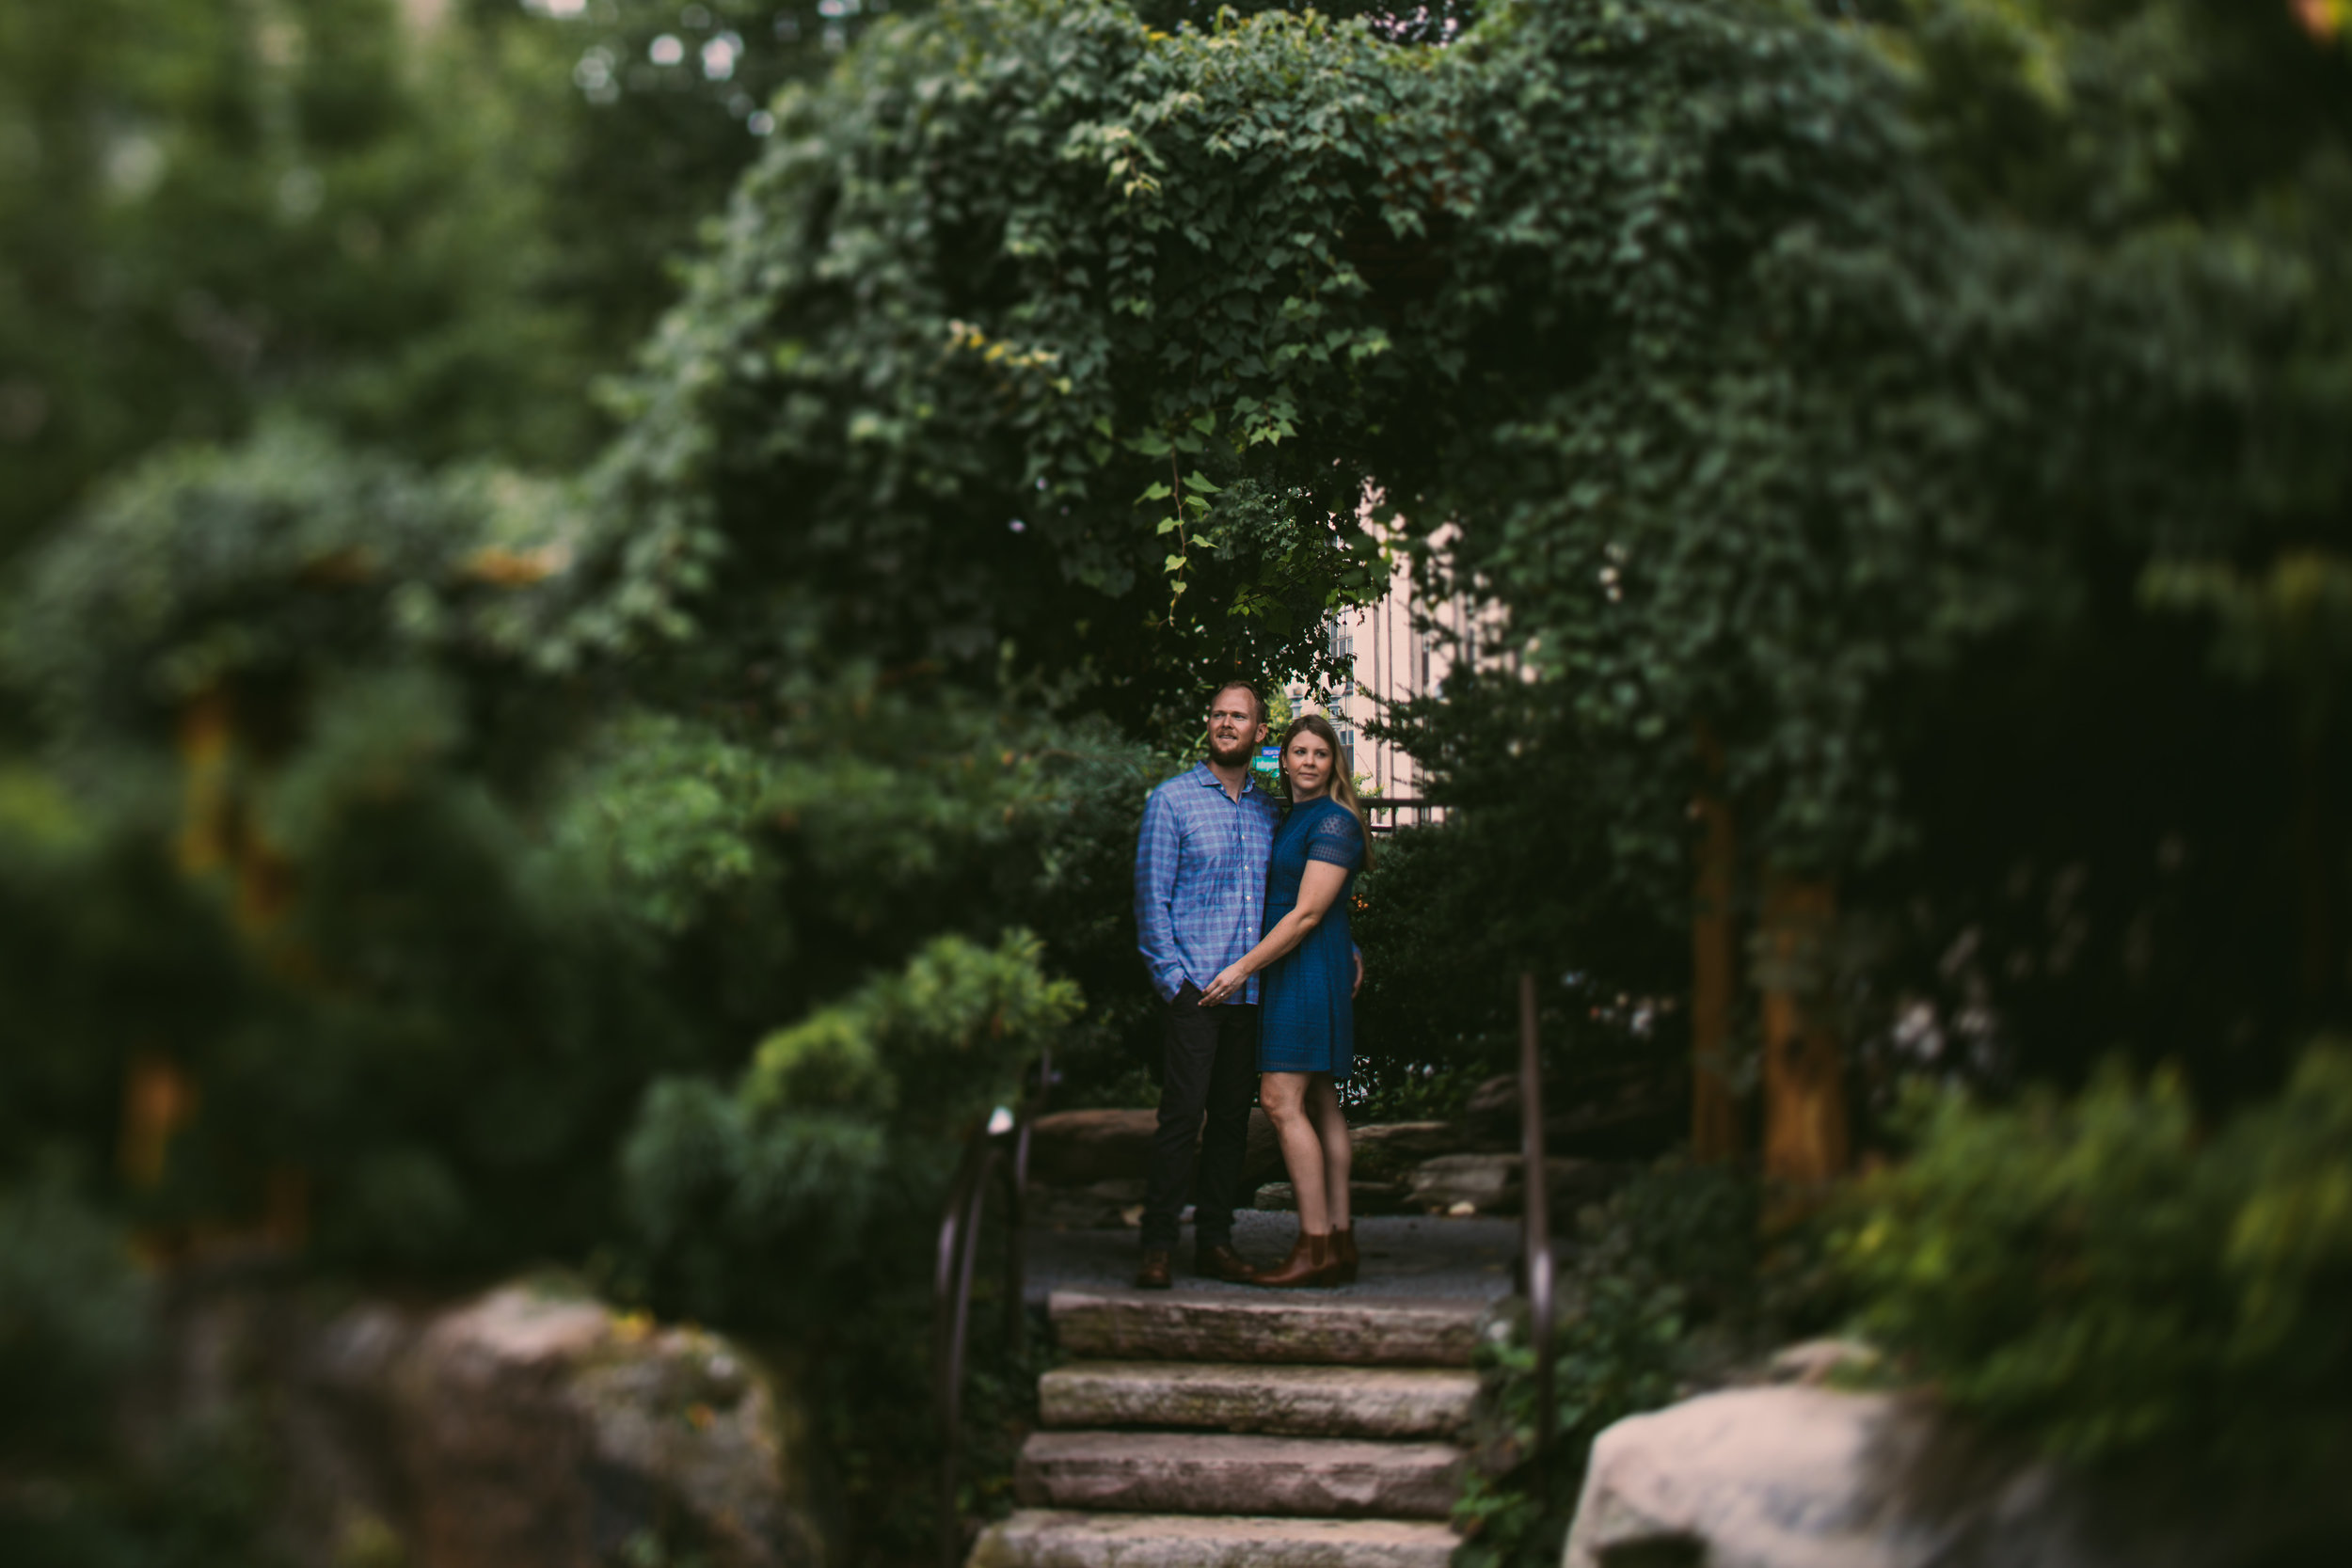 PANGTOGRAPHY_KJ-30.JPG WASHINGTON DC ENGAGEMENT